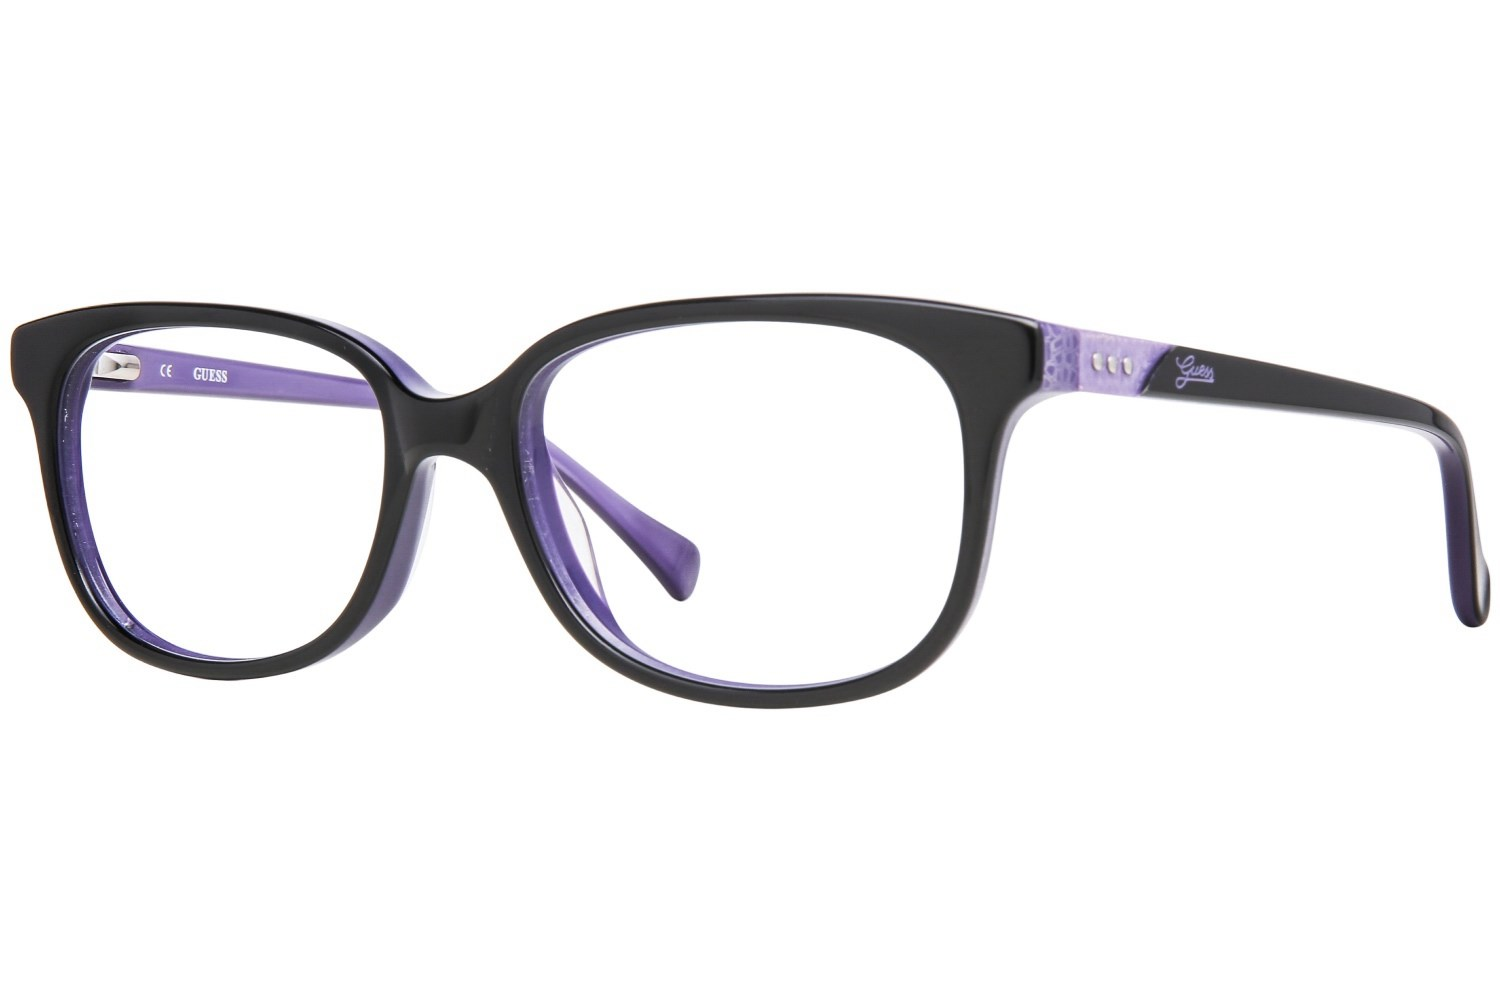 Guess Eyeglass Frames 2293 : Guess GU 2293 Prescription Eyeglasses - KPStylewiseEyeglasses